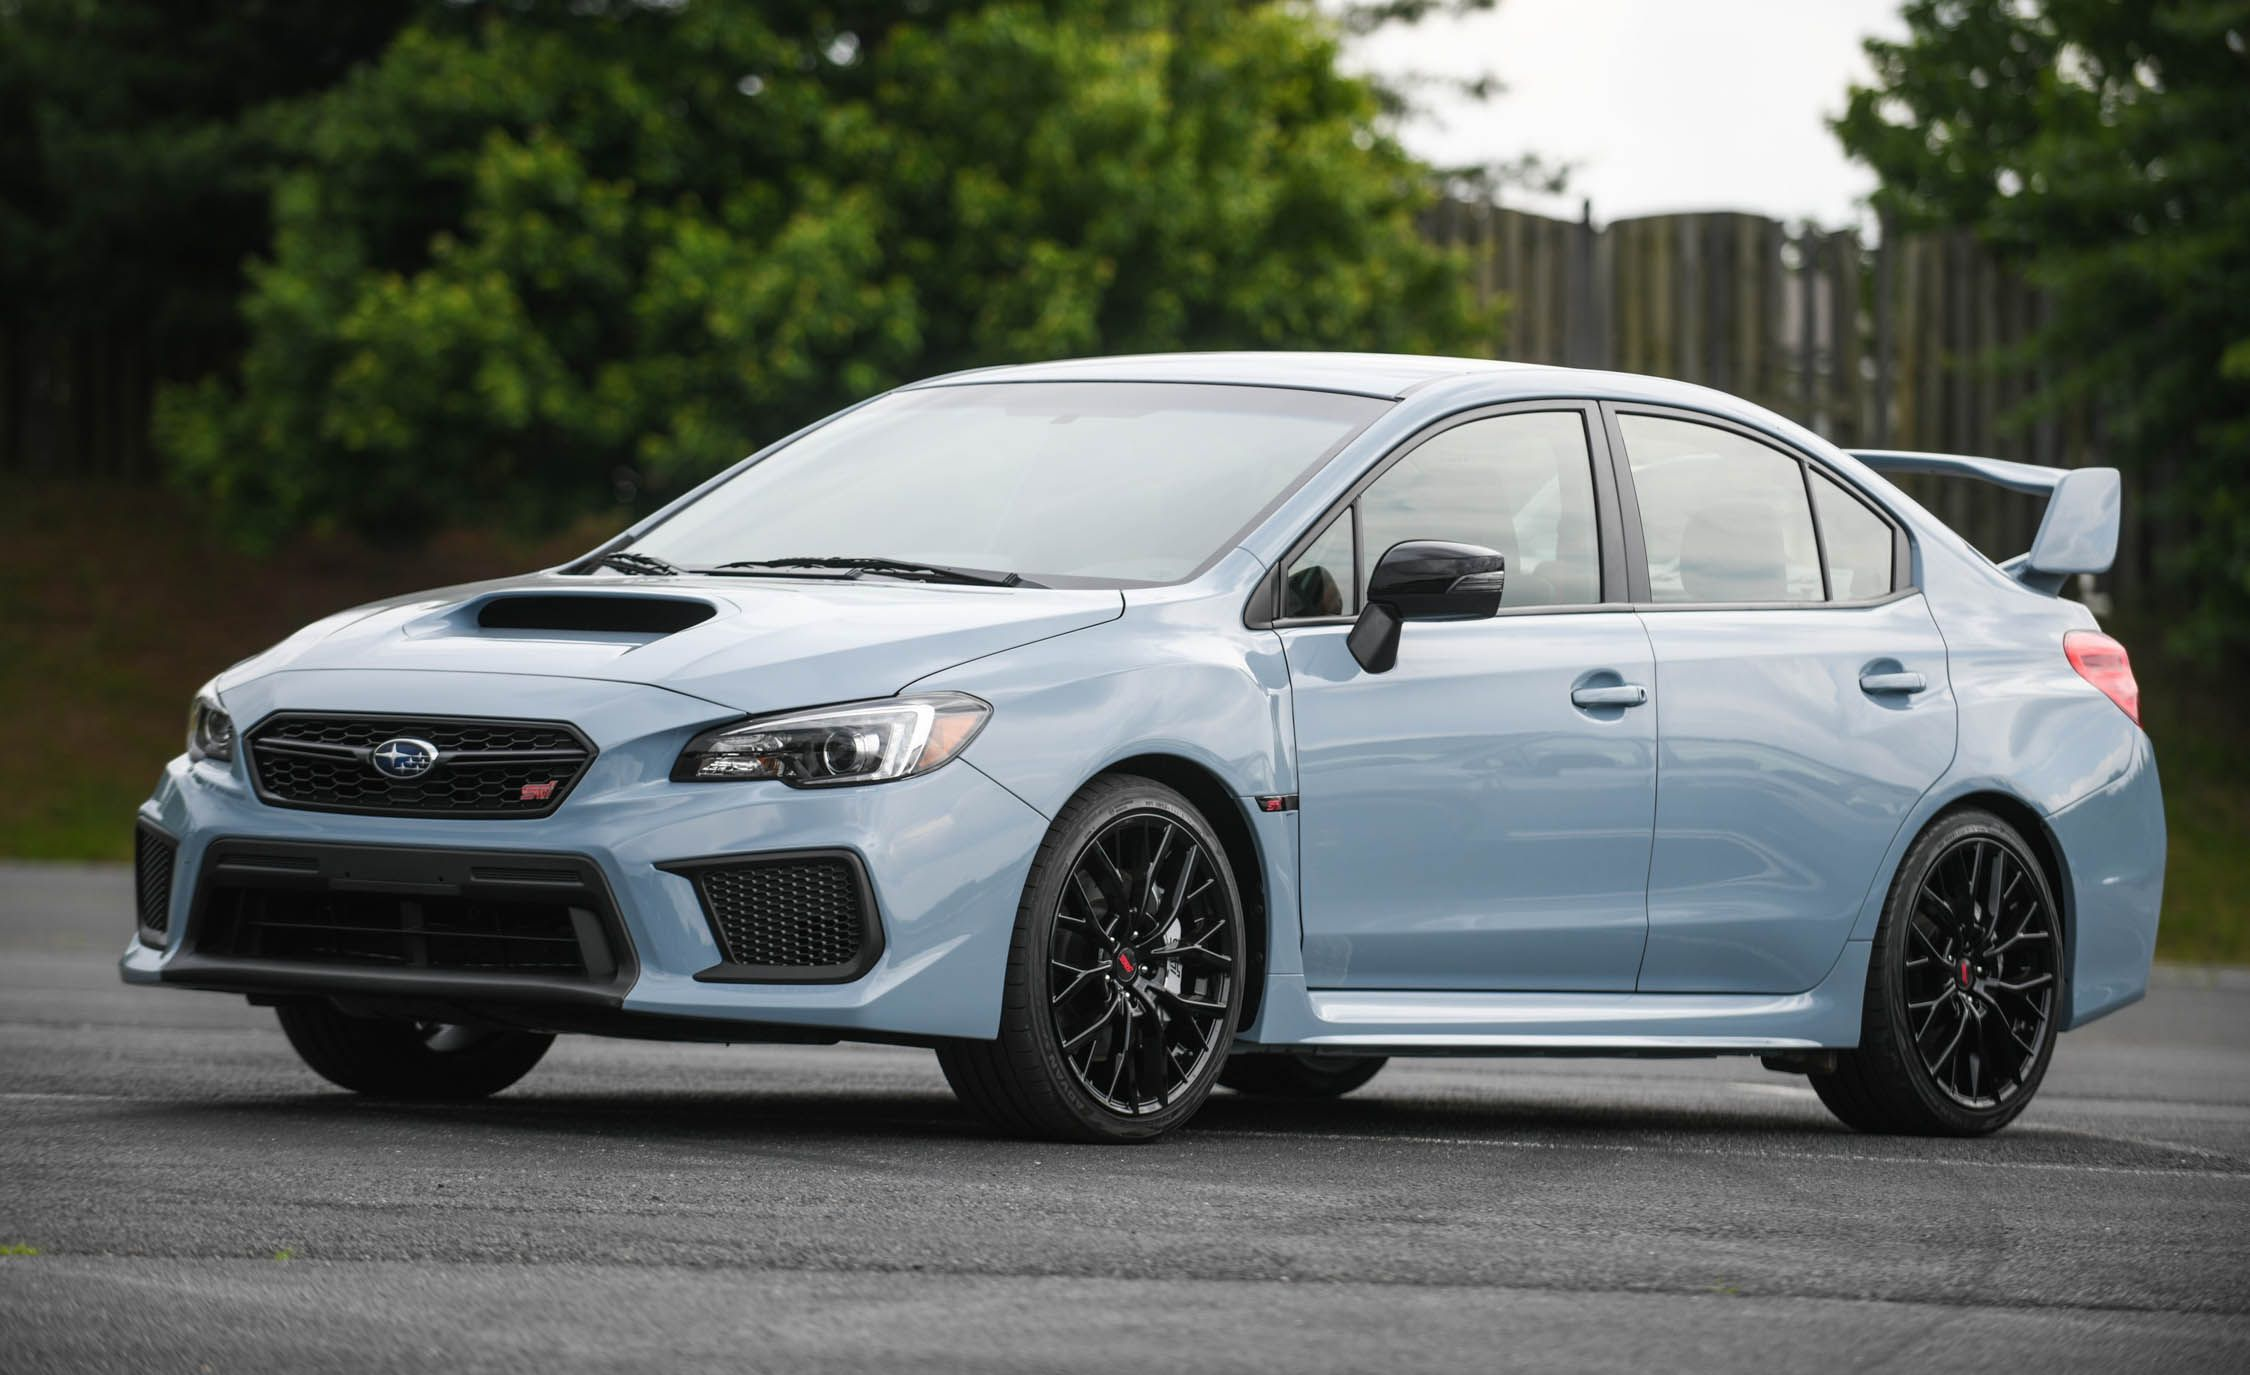 44 New 2019 Subaru Wrx Specs and Review